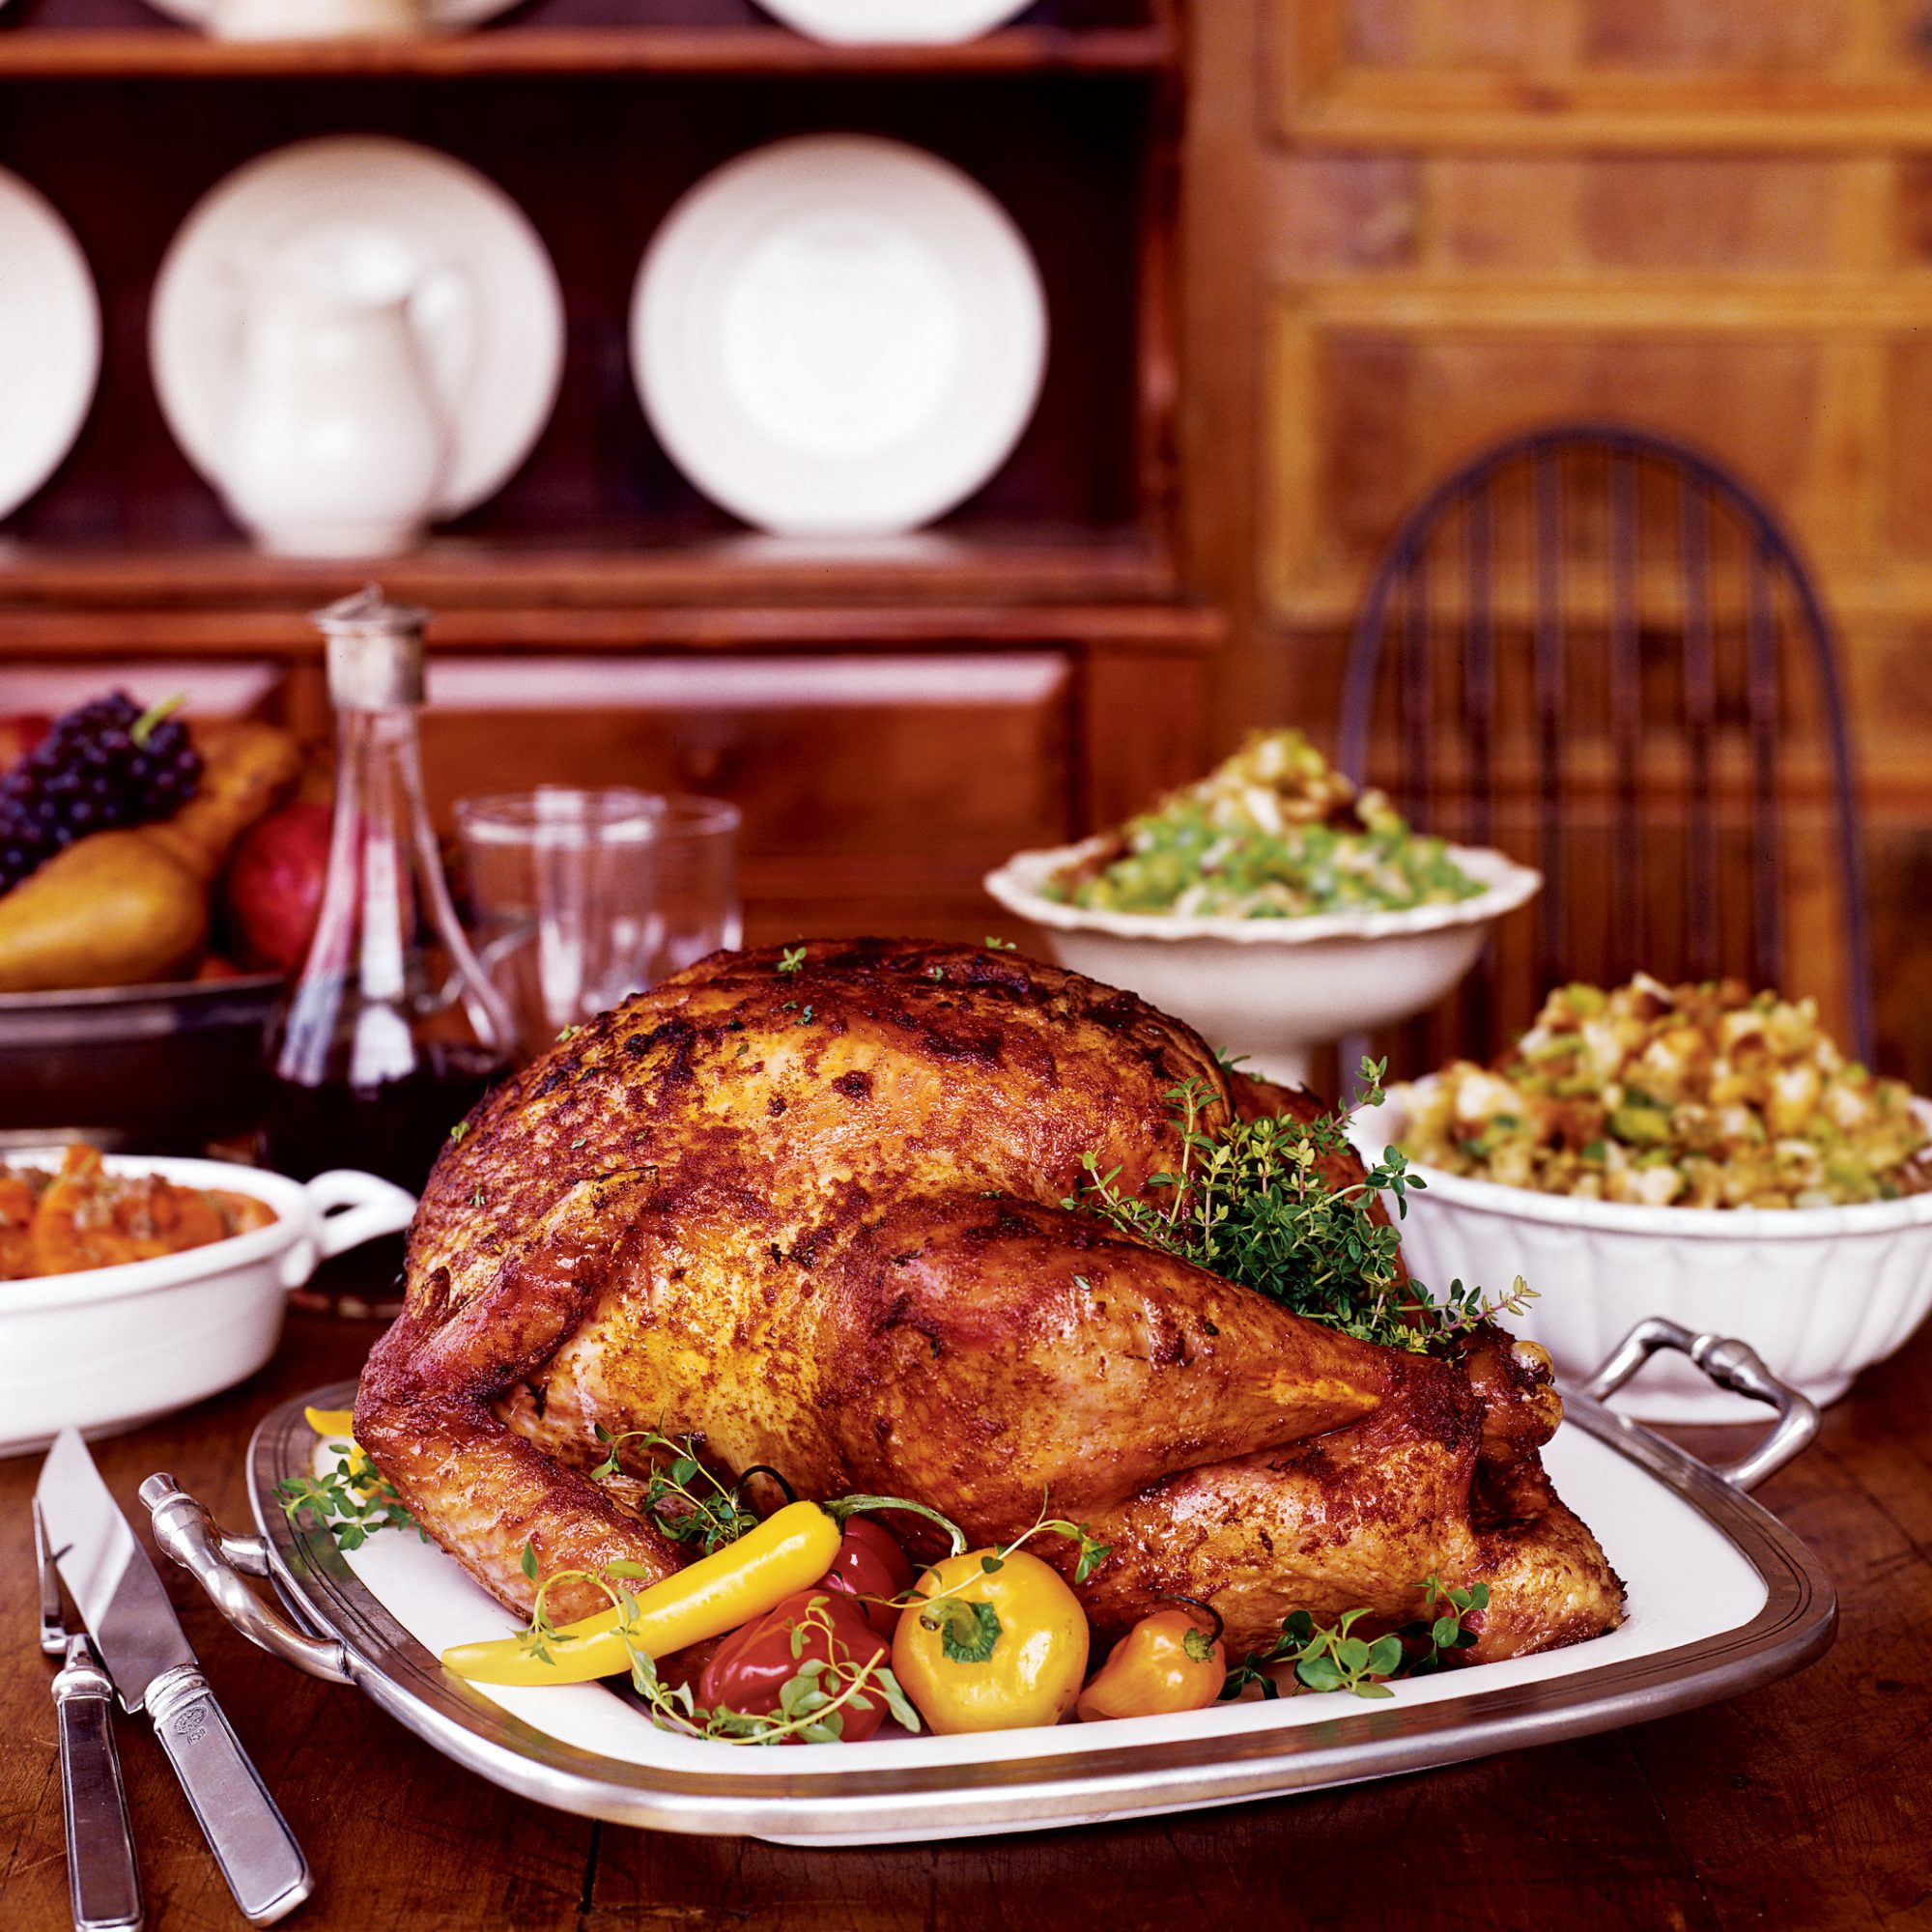 200411-r-paprika-glazed-turkey.jpg